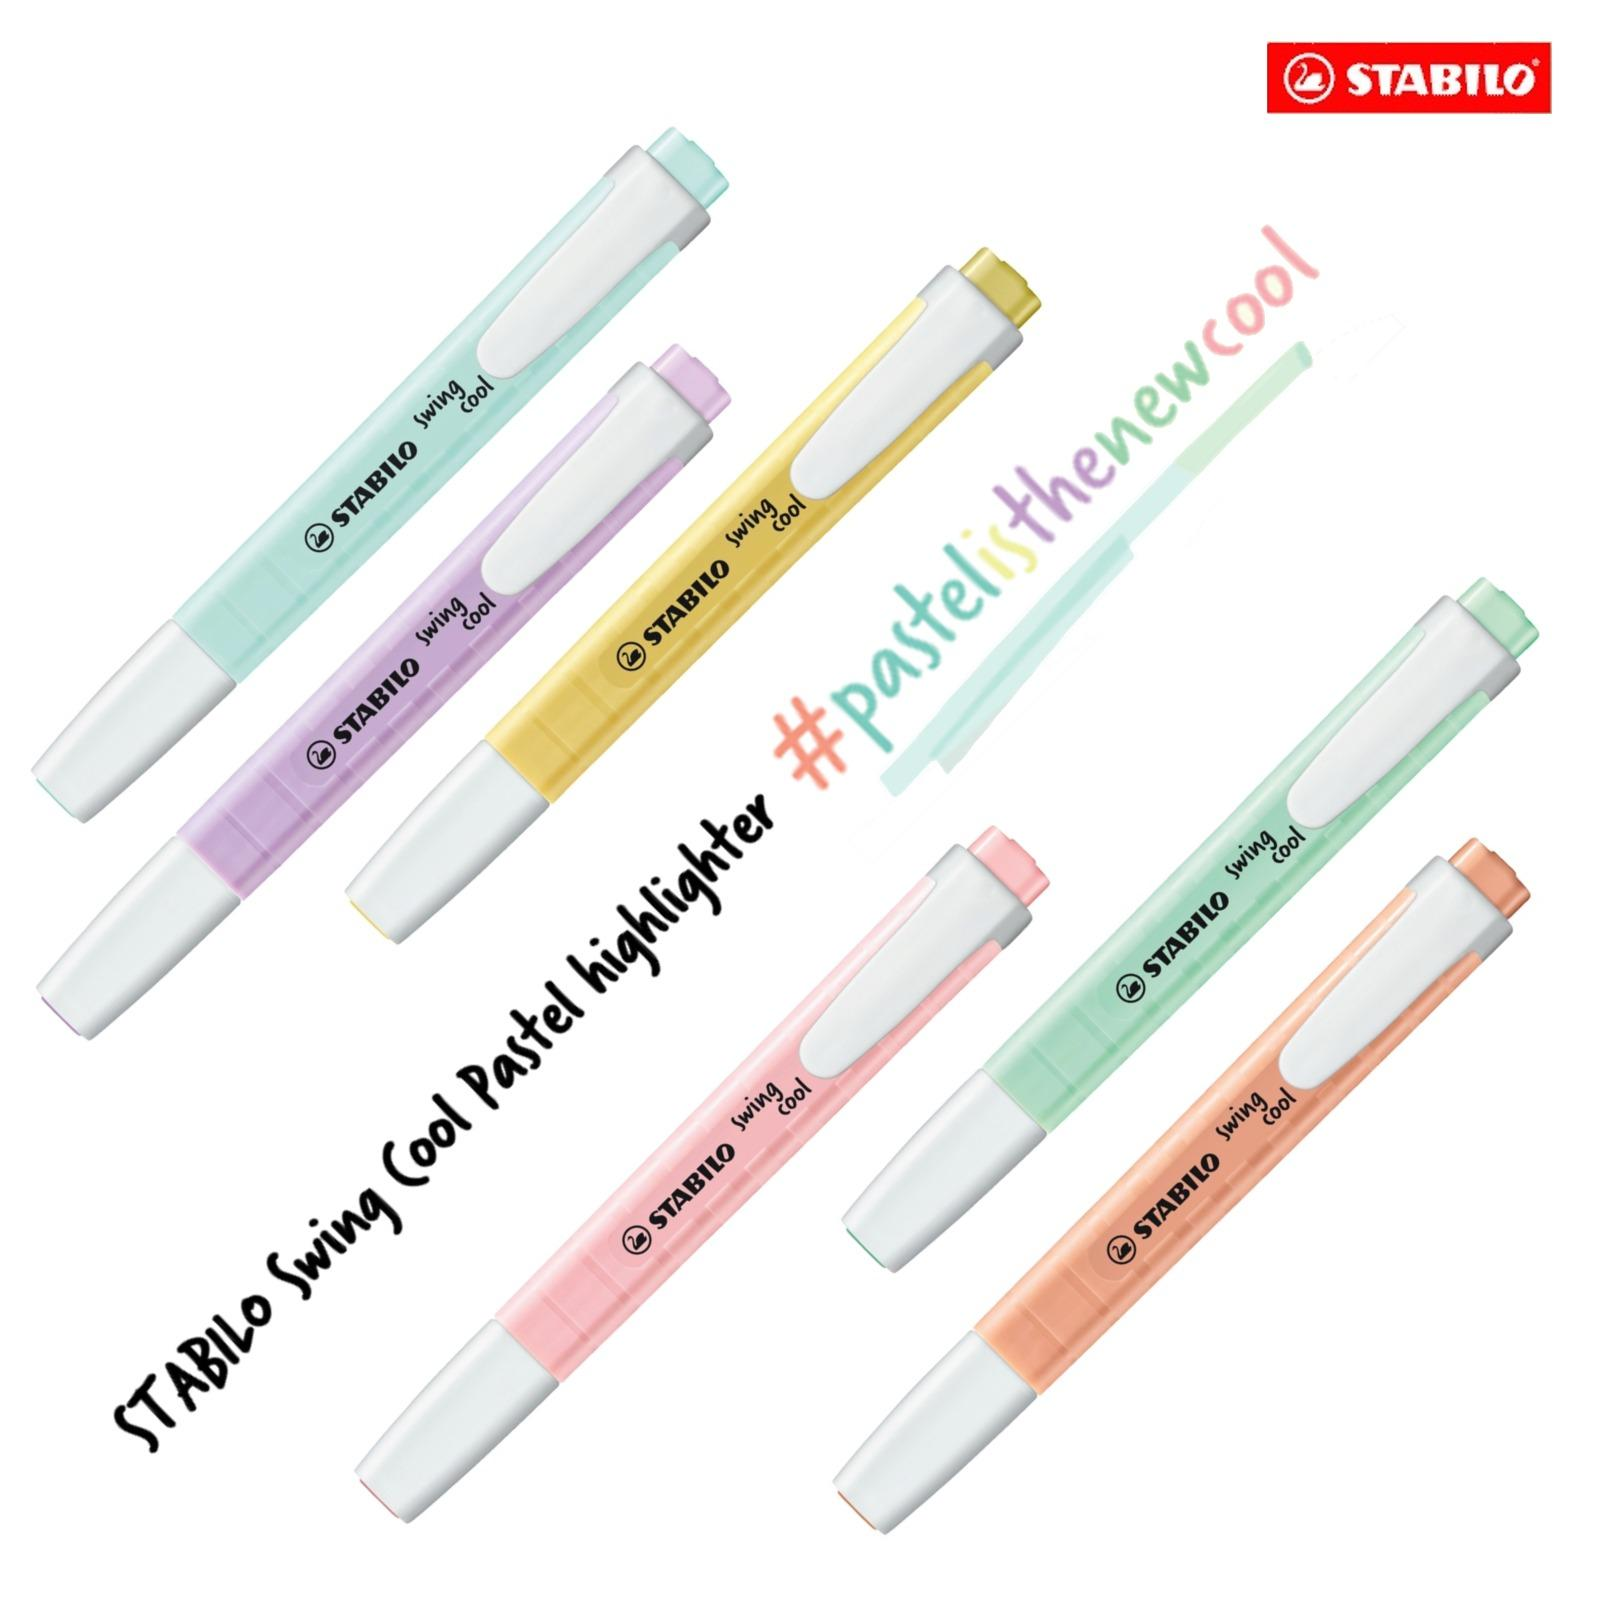 Stabilo Swing Cool Pastel Highlighter 6Pcs New Edition Coupon